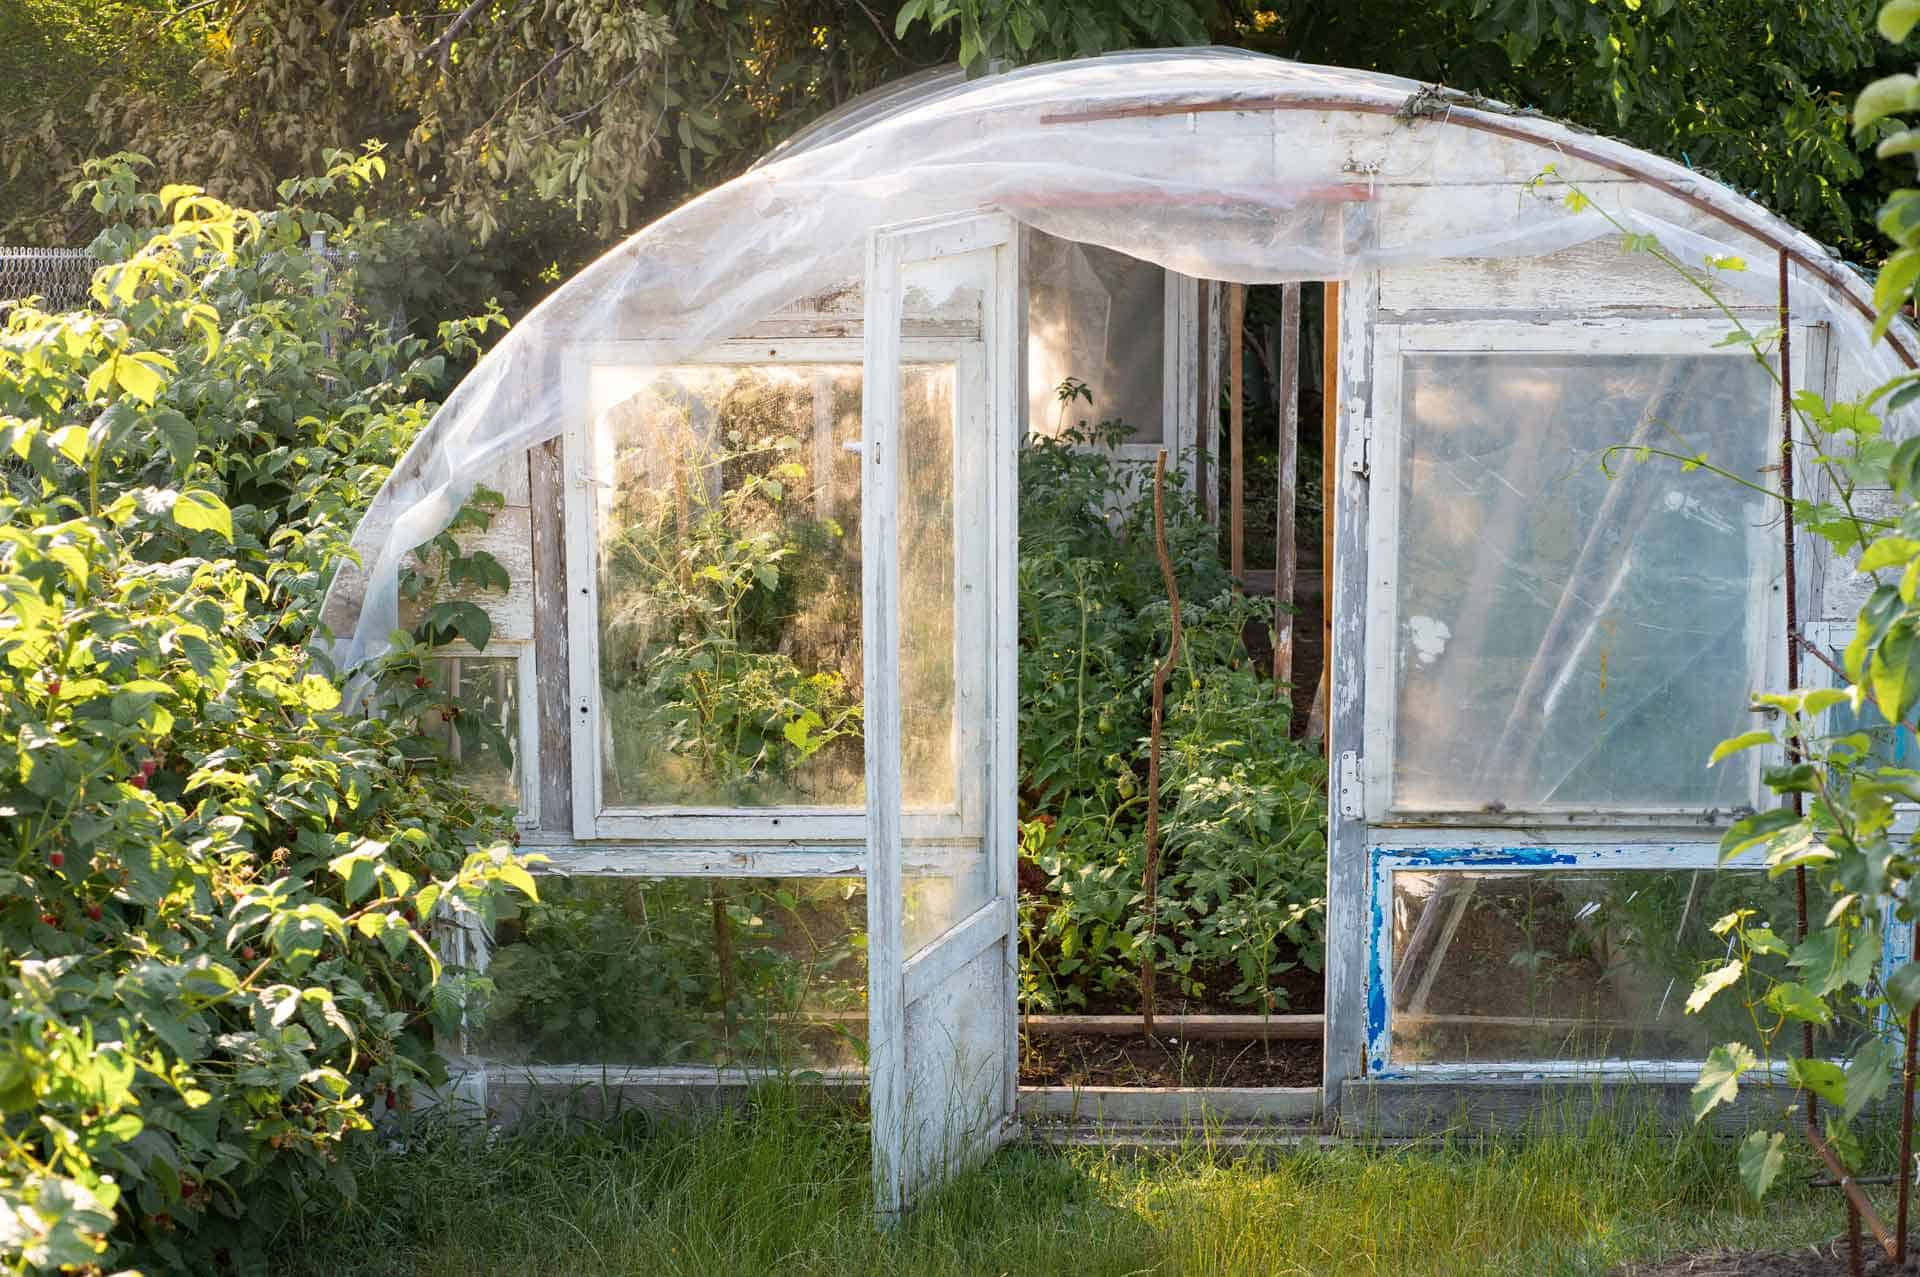 Tomato plants growing inside a freestanding tunnel greenhouse